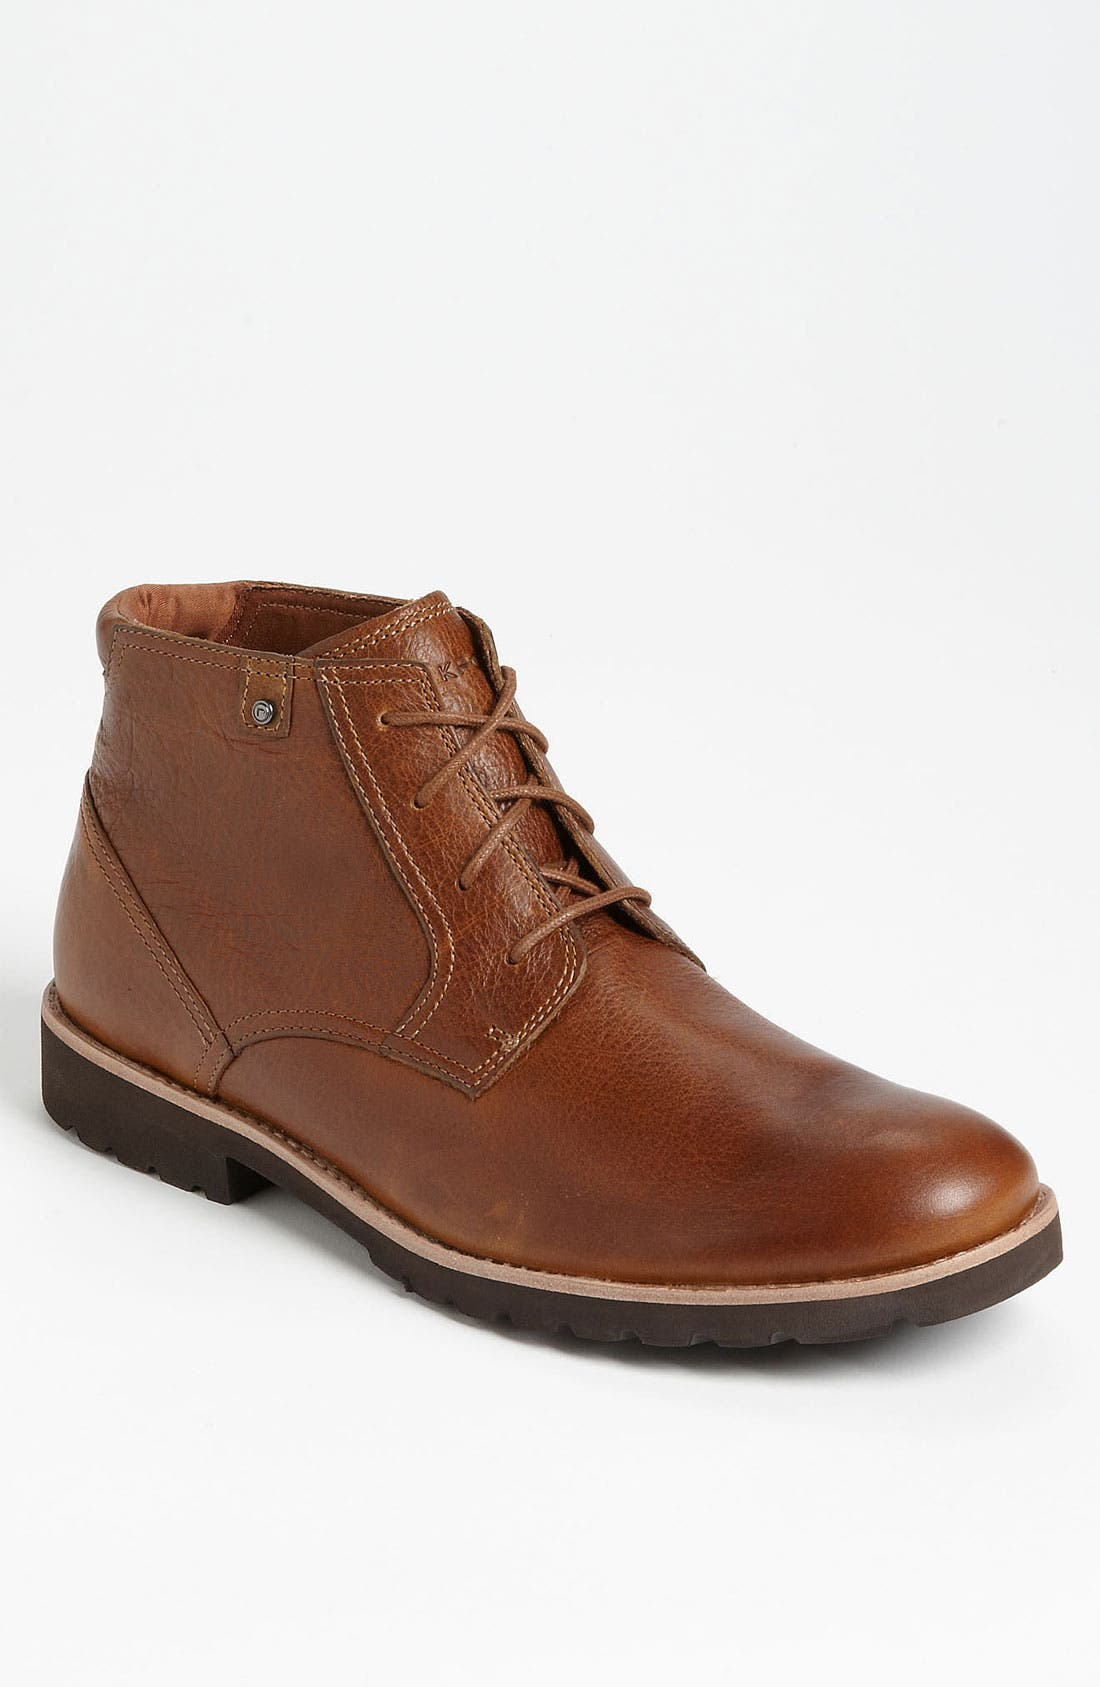 Alternate Image 1 Selected - Rockport 'Ledge Hill' Chukka Boot (Online Only)